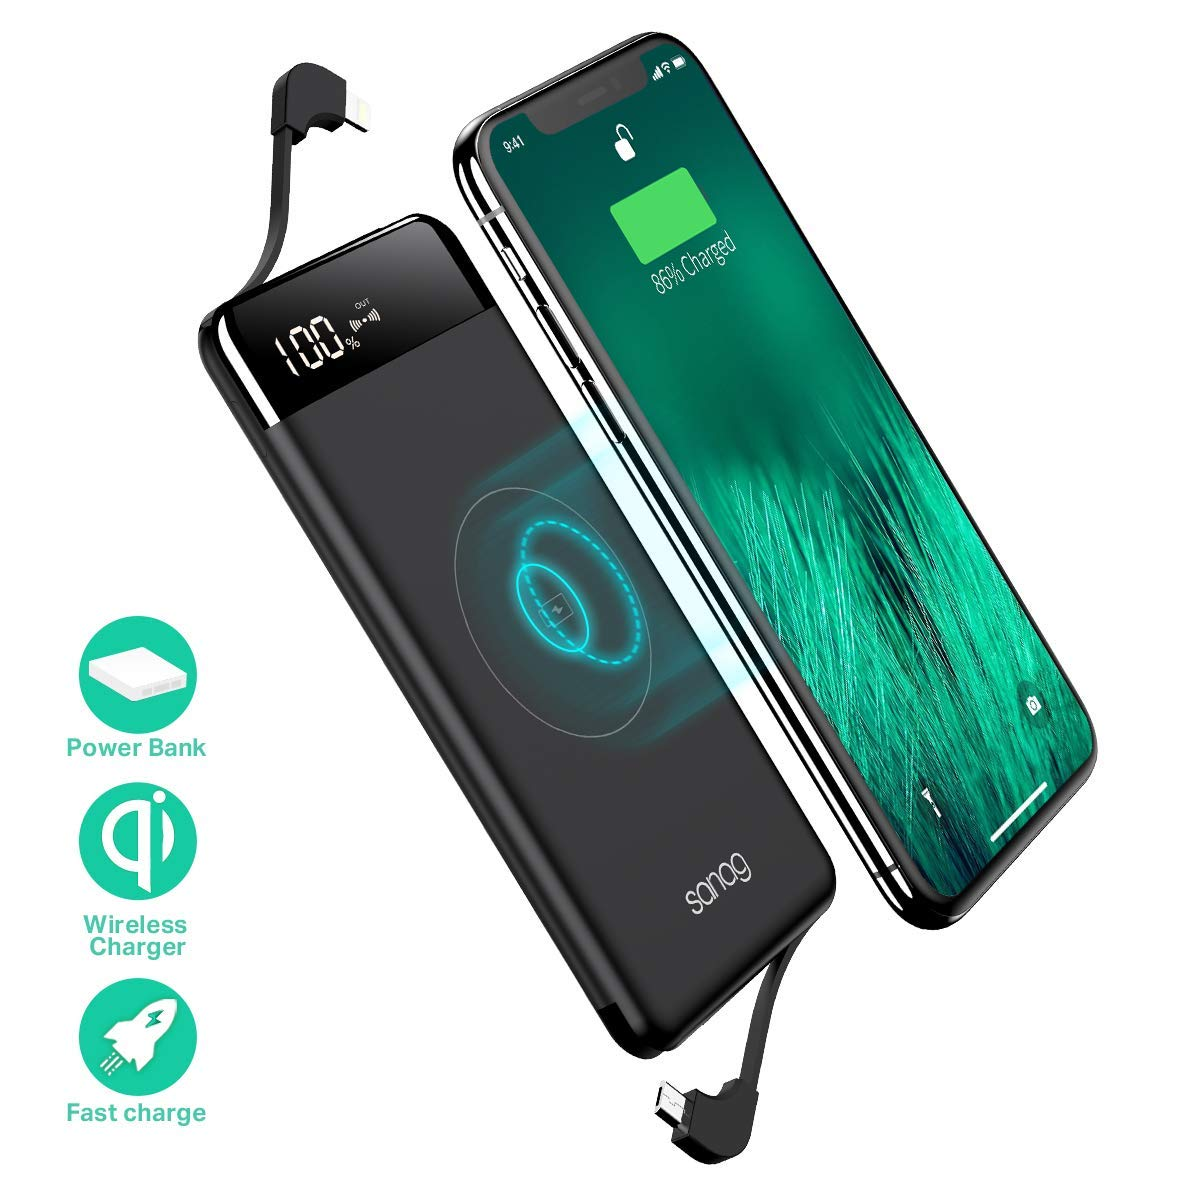 Wireless Portable Charger,Portable Charger,SANAG 10000mAh Wireless Battery Pack with Micro USB to Type-C Adaptor QC 2.0 Ports and LED Displaly,Built in Cables for iPhone,iPad,Samsung and More